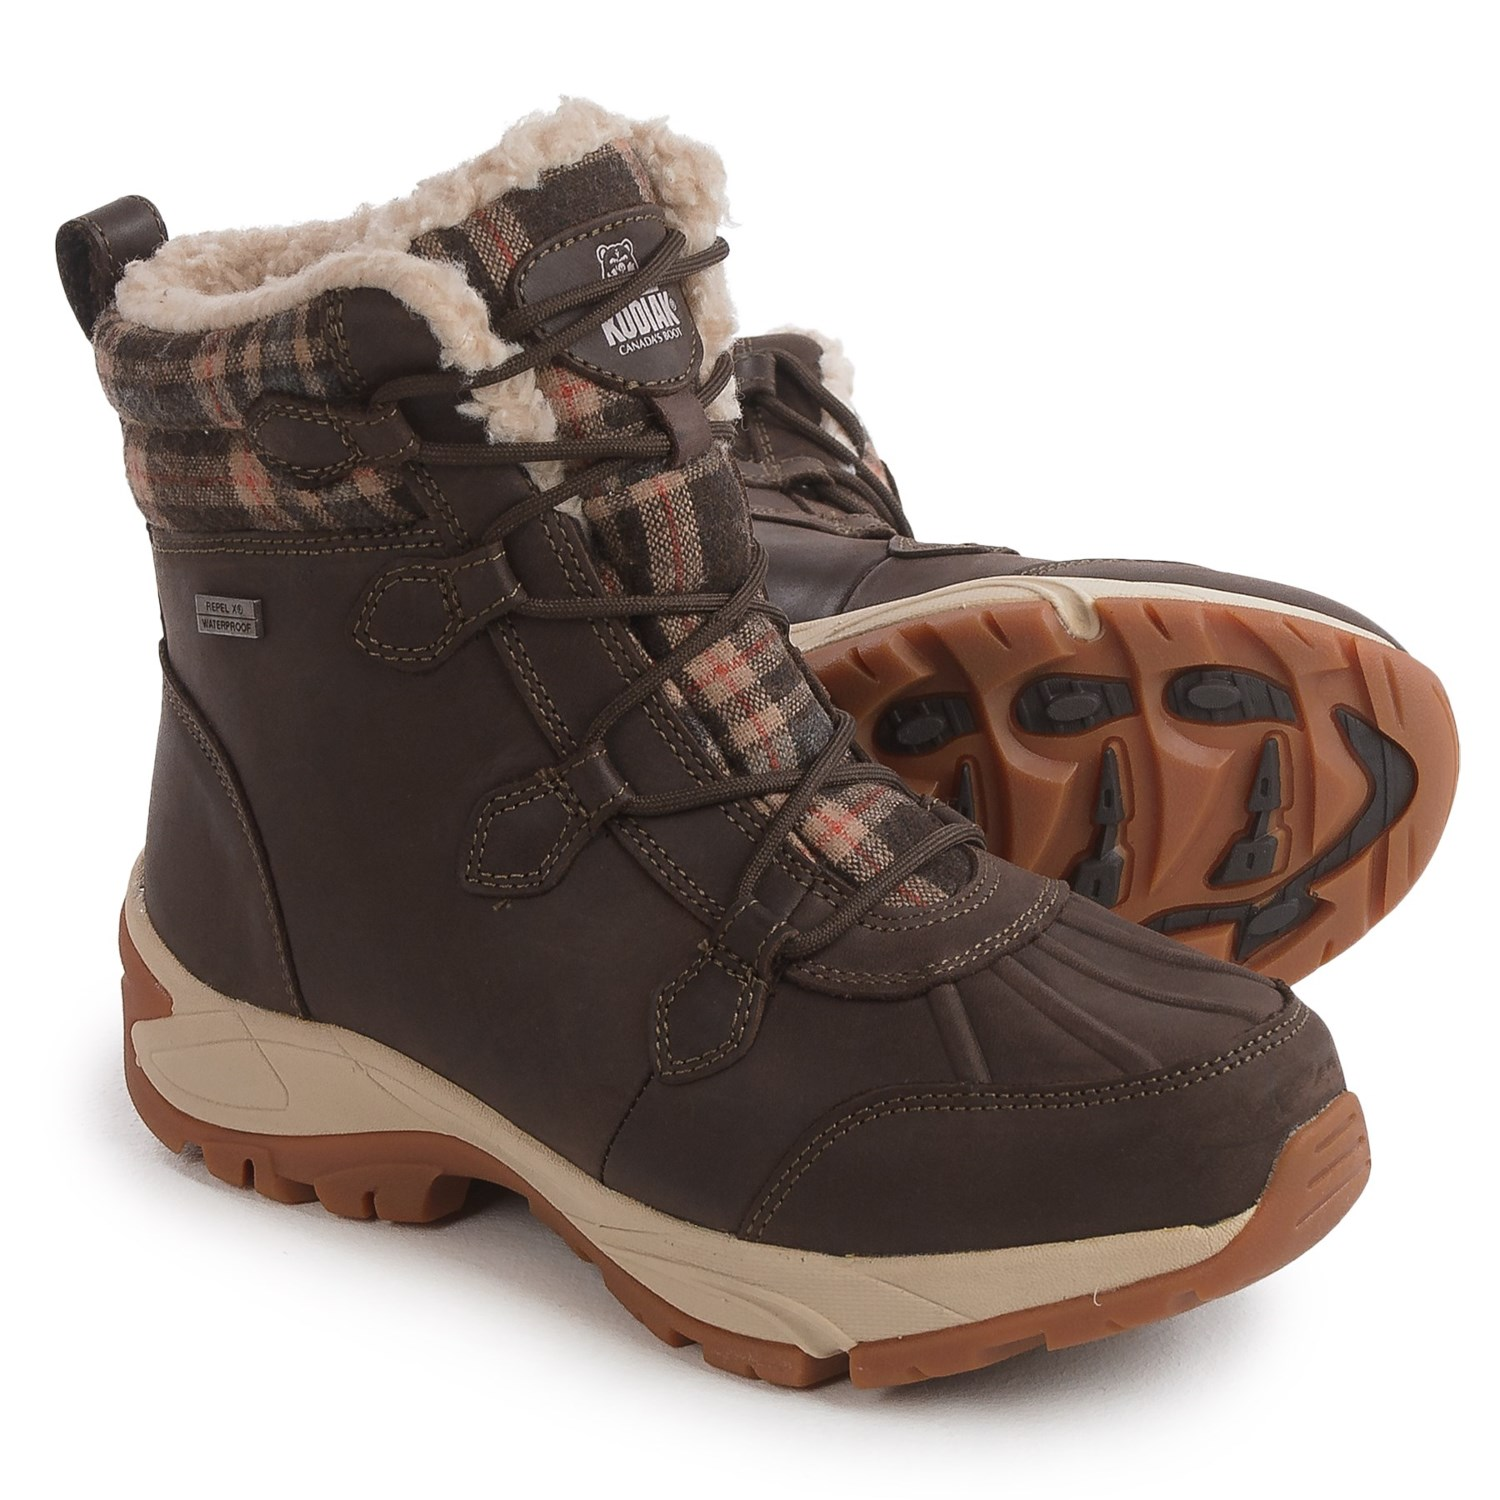 Brilliant Kodiak Reegan Snow Boots (For Women) - Save 80%